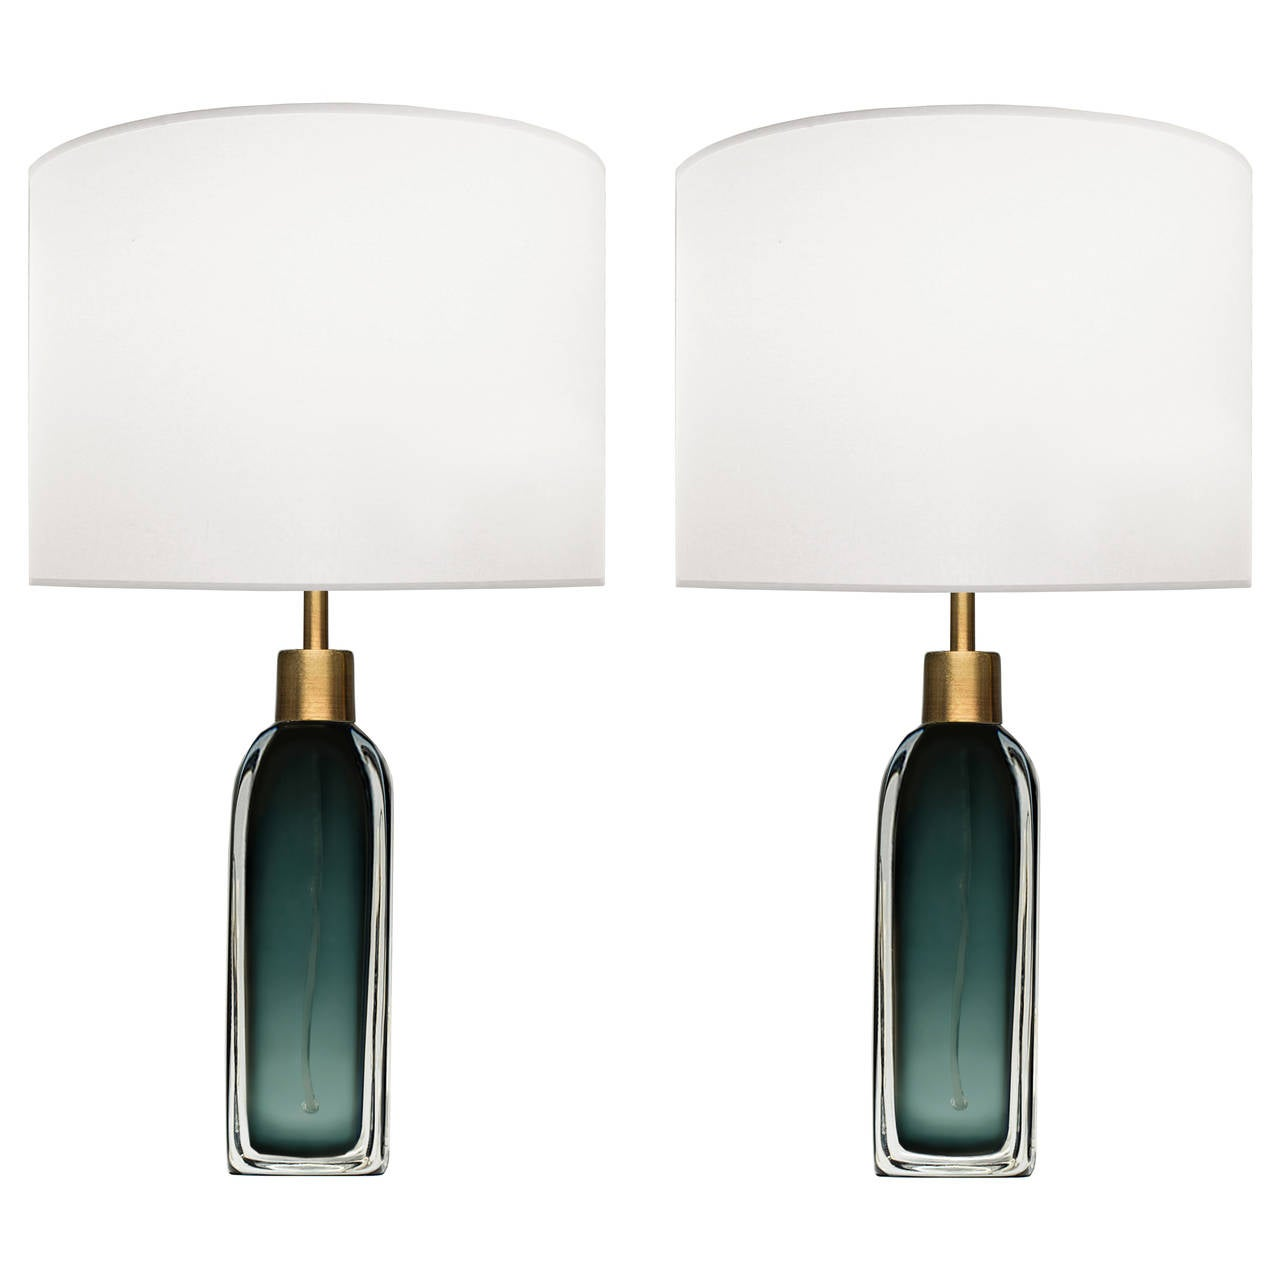 Pair of Nils Landberg for Orrefors Green Glass Lamps